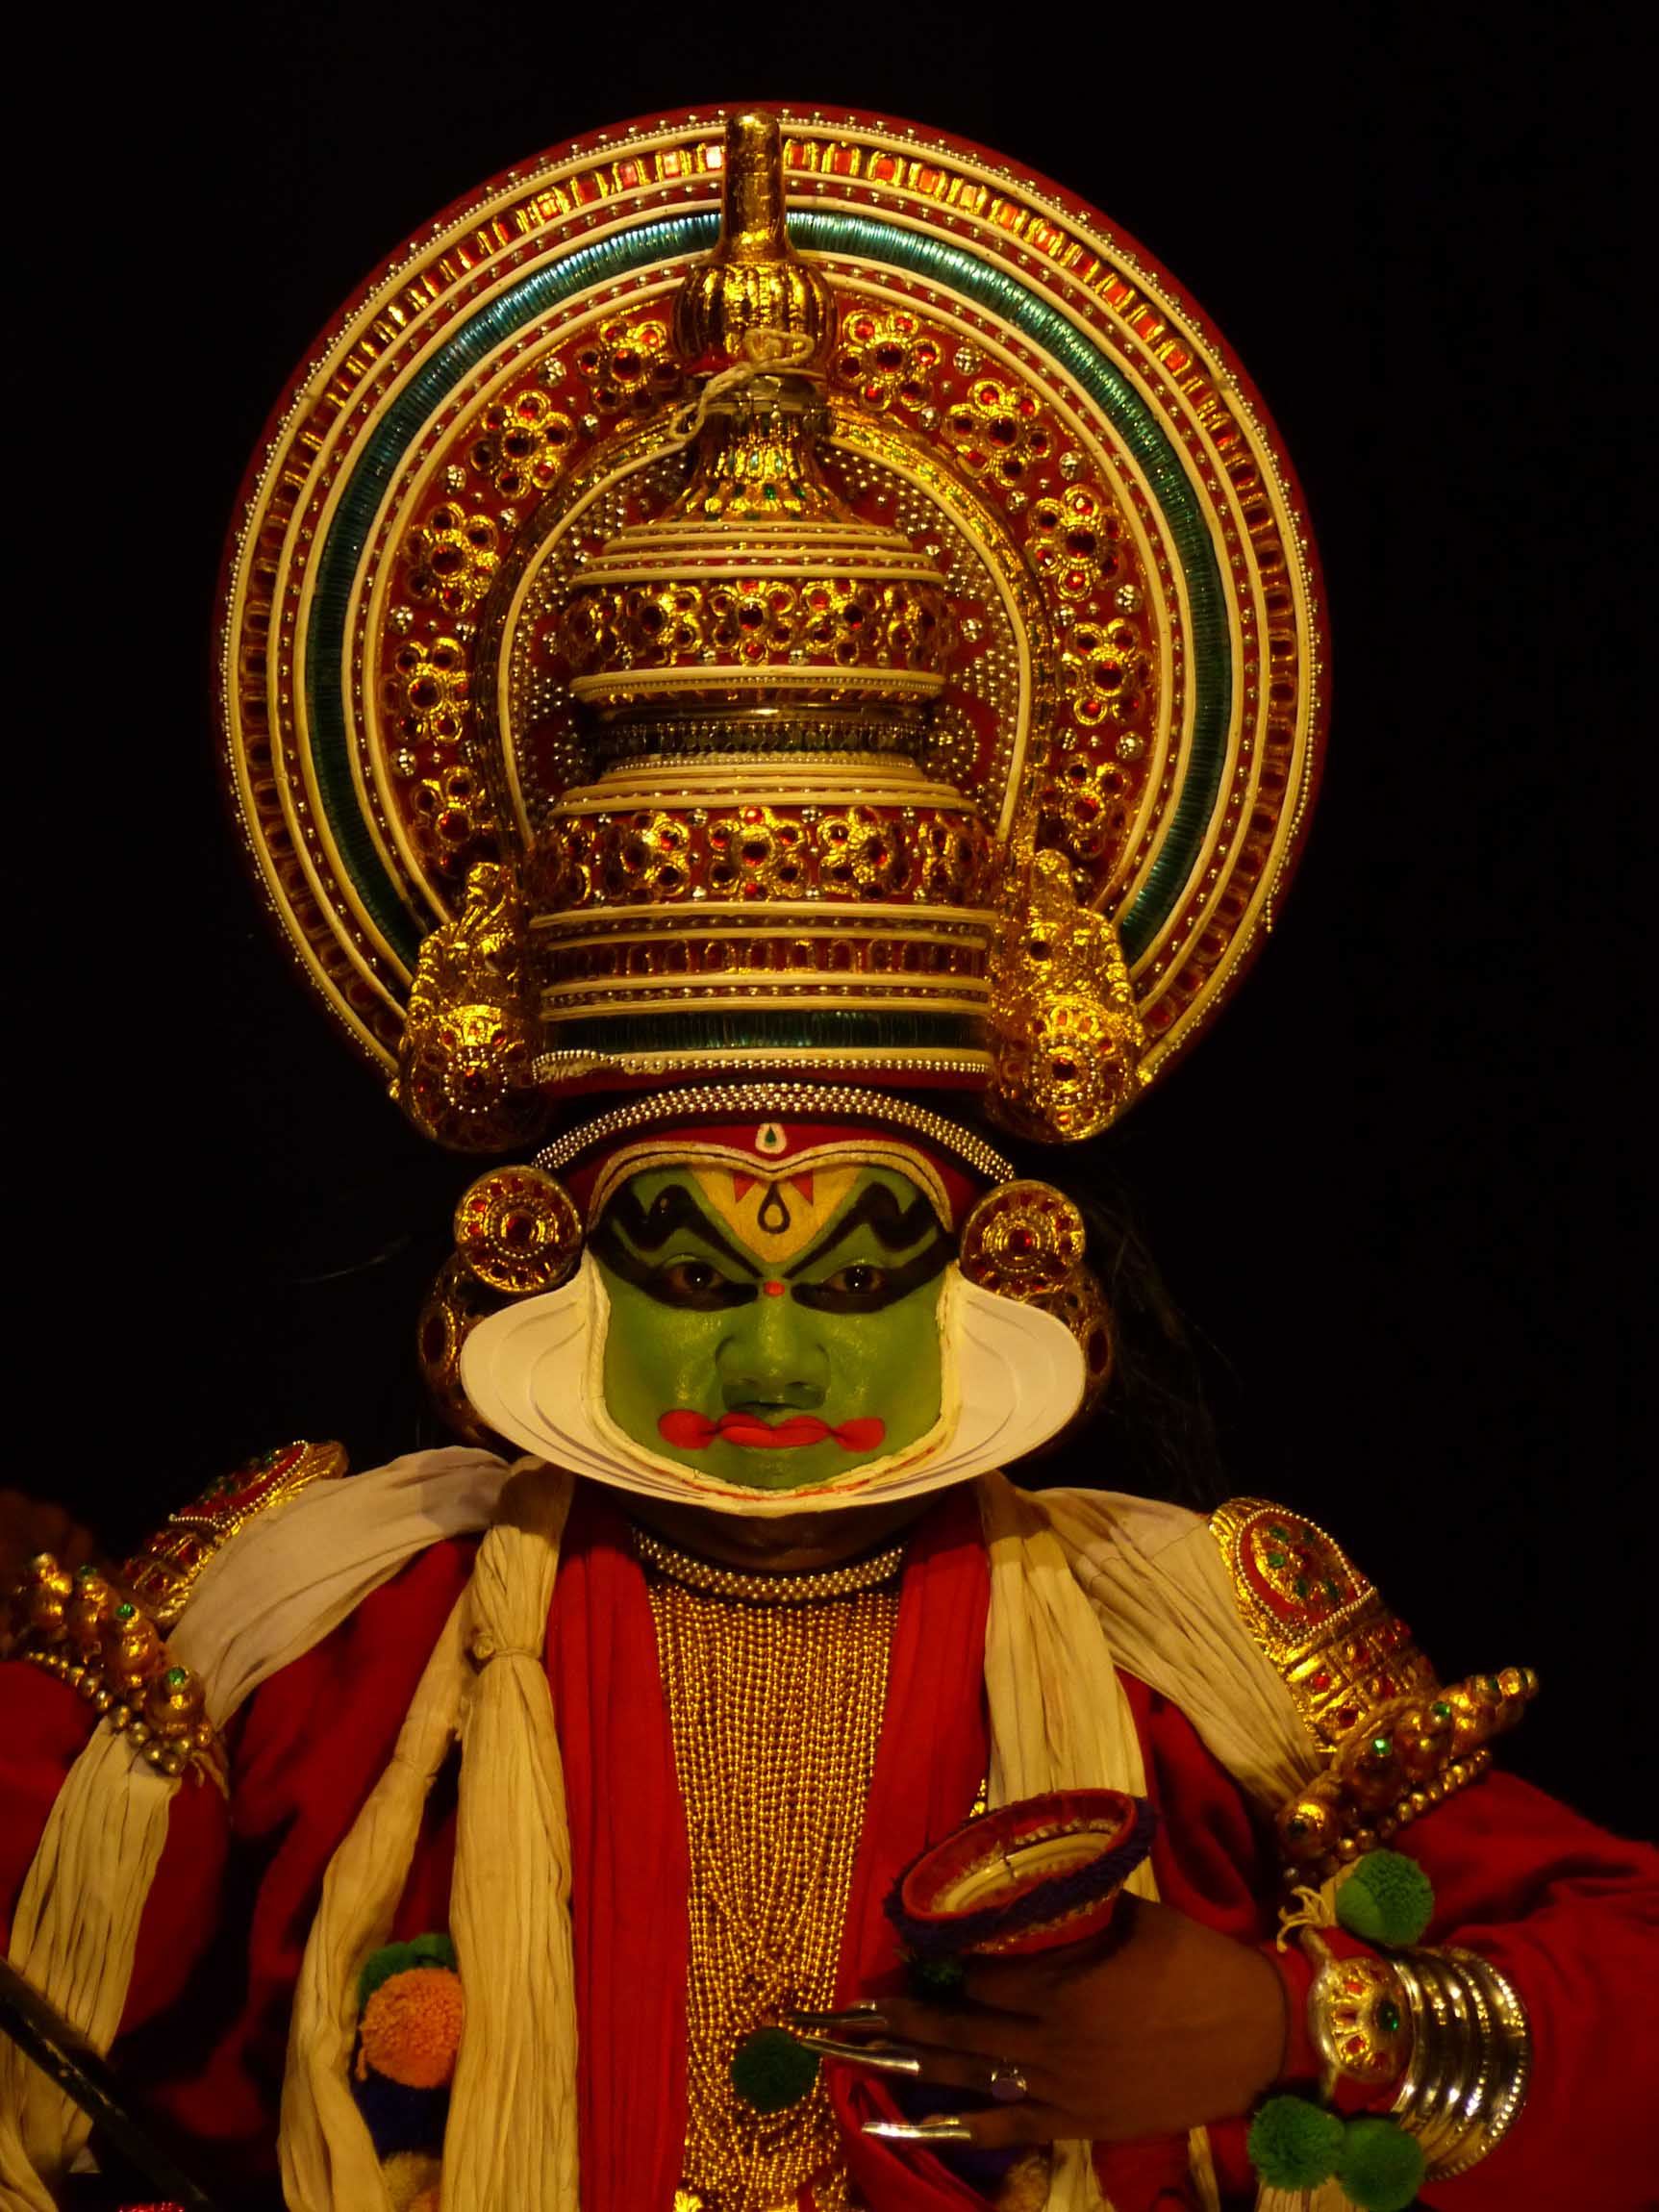 Man in costume and colourful face paint